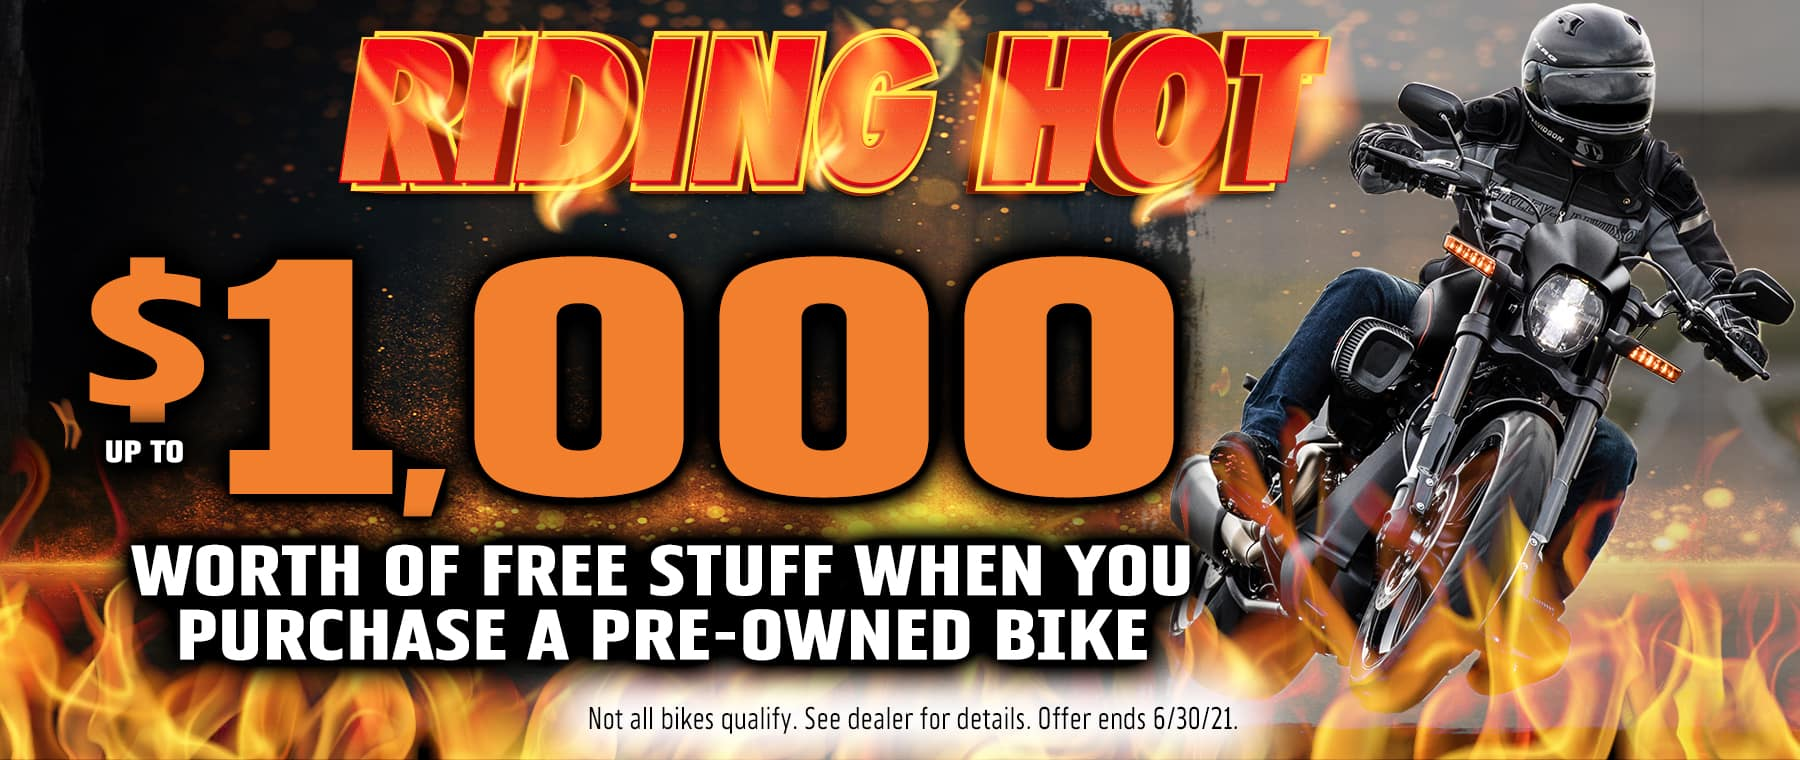 UP TO $1,000 WORTH OF STUFF WITH PURCHASE OF PREOWNED BIKE